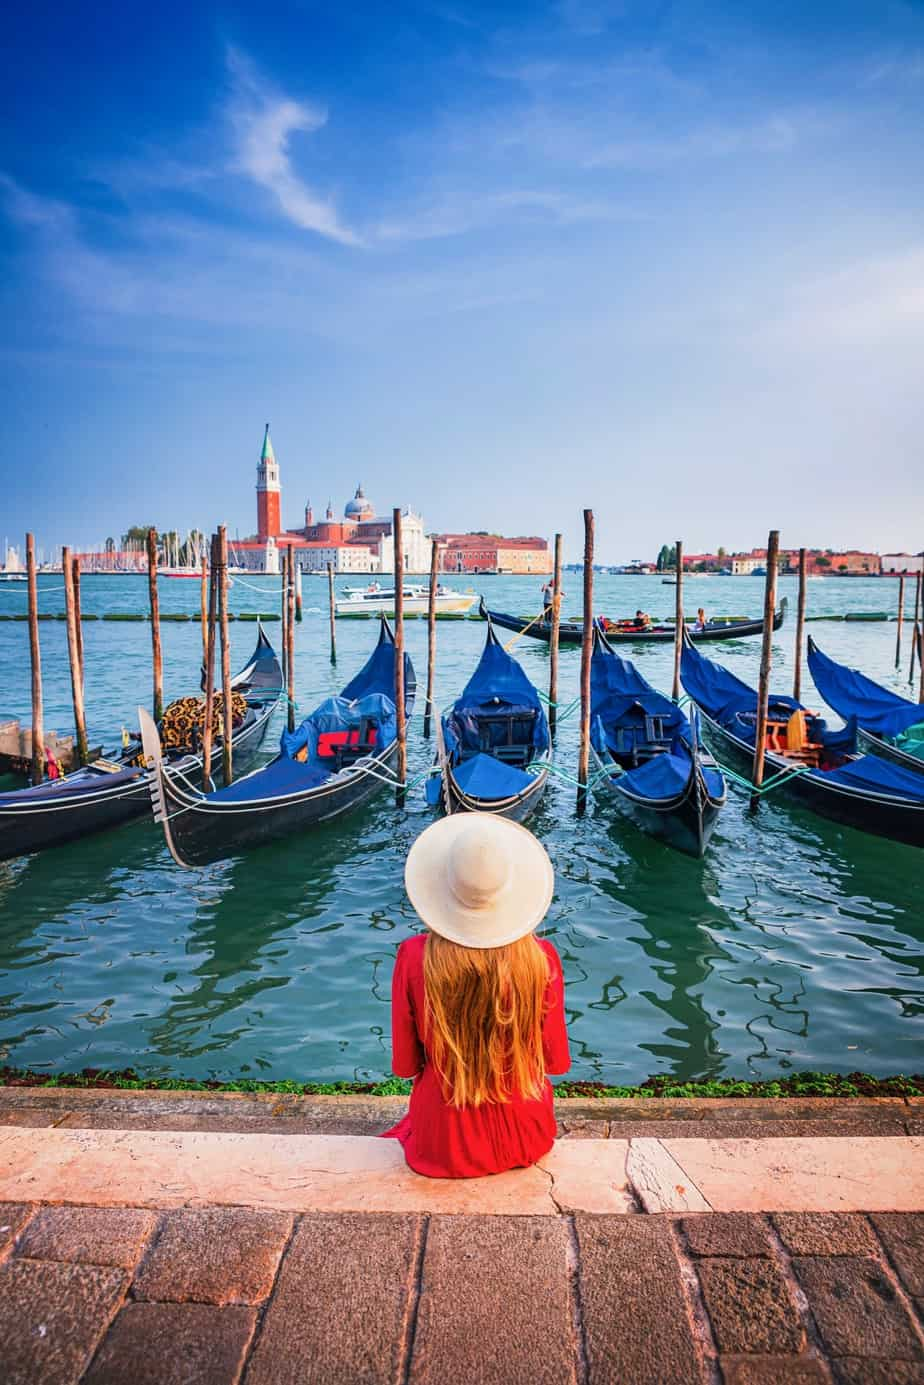 San Marco Waterfront is one of the most Instagrammable Places In Venice Italy | Gondolas in Italy | best photo spots in Italy | where to take Instagram photos in Venice | Venice gondolas Instagram spots